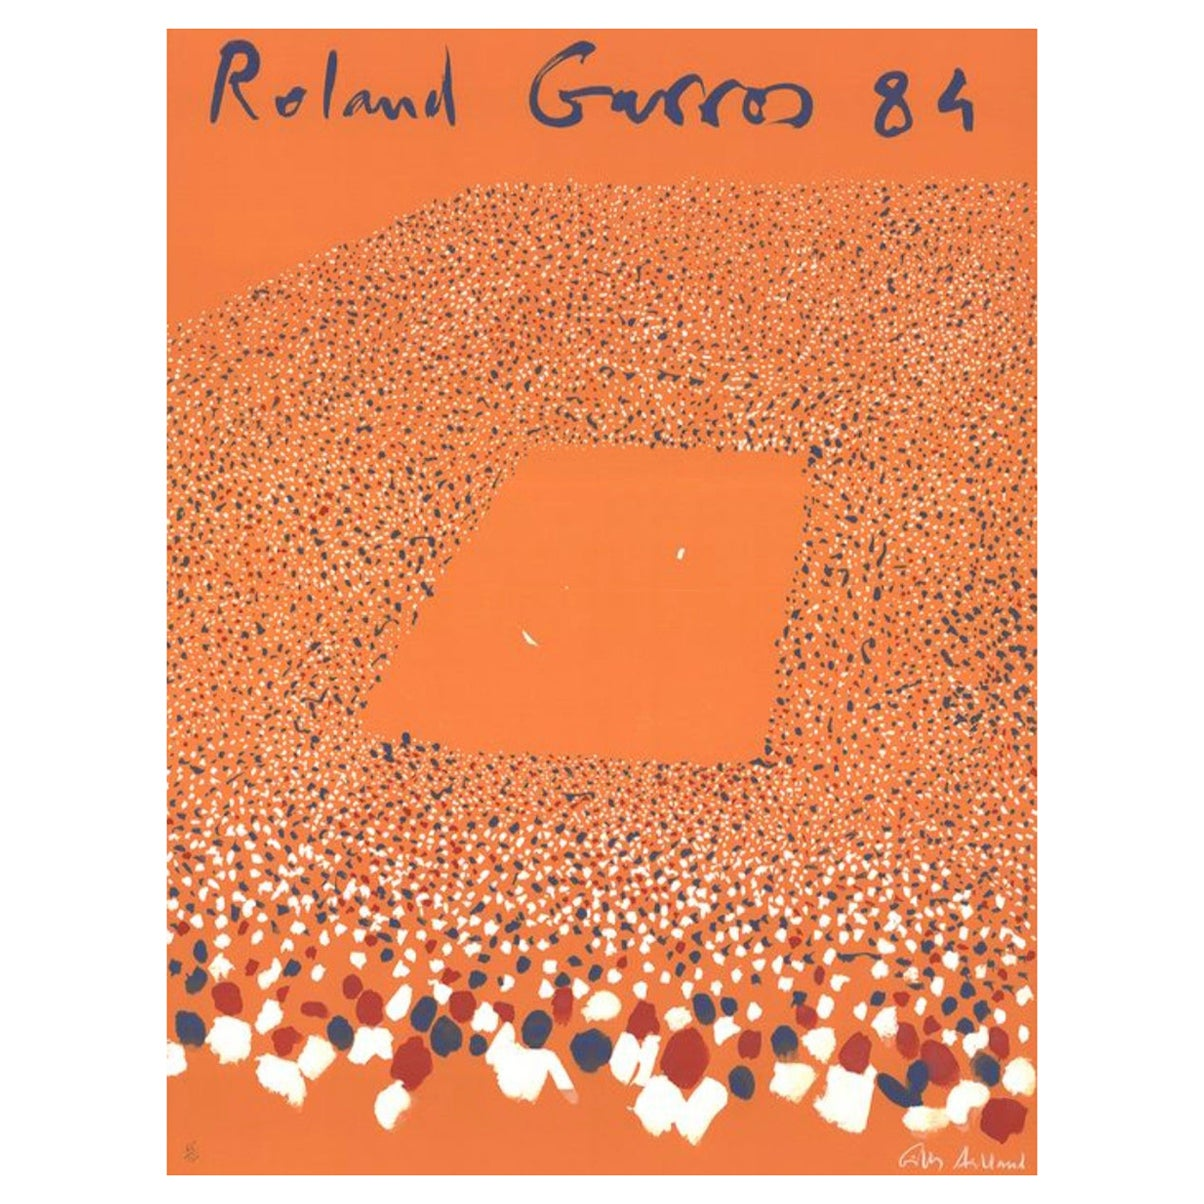 Original Lithograph 'ROLAND GARROS' 1984 Signed & Numbered by Gilles-Aillaud